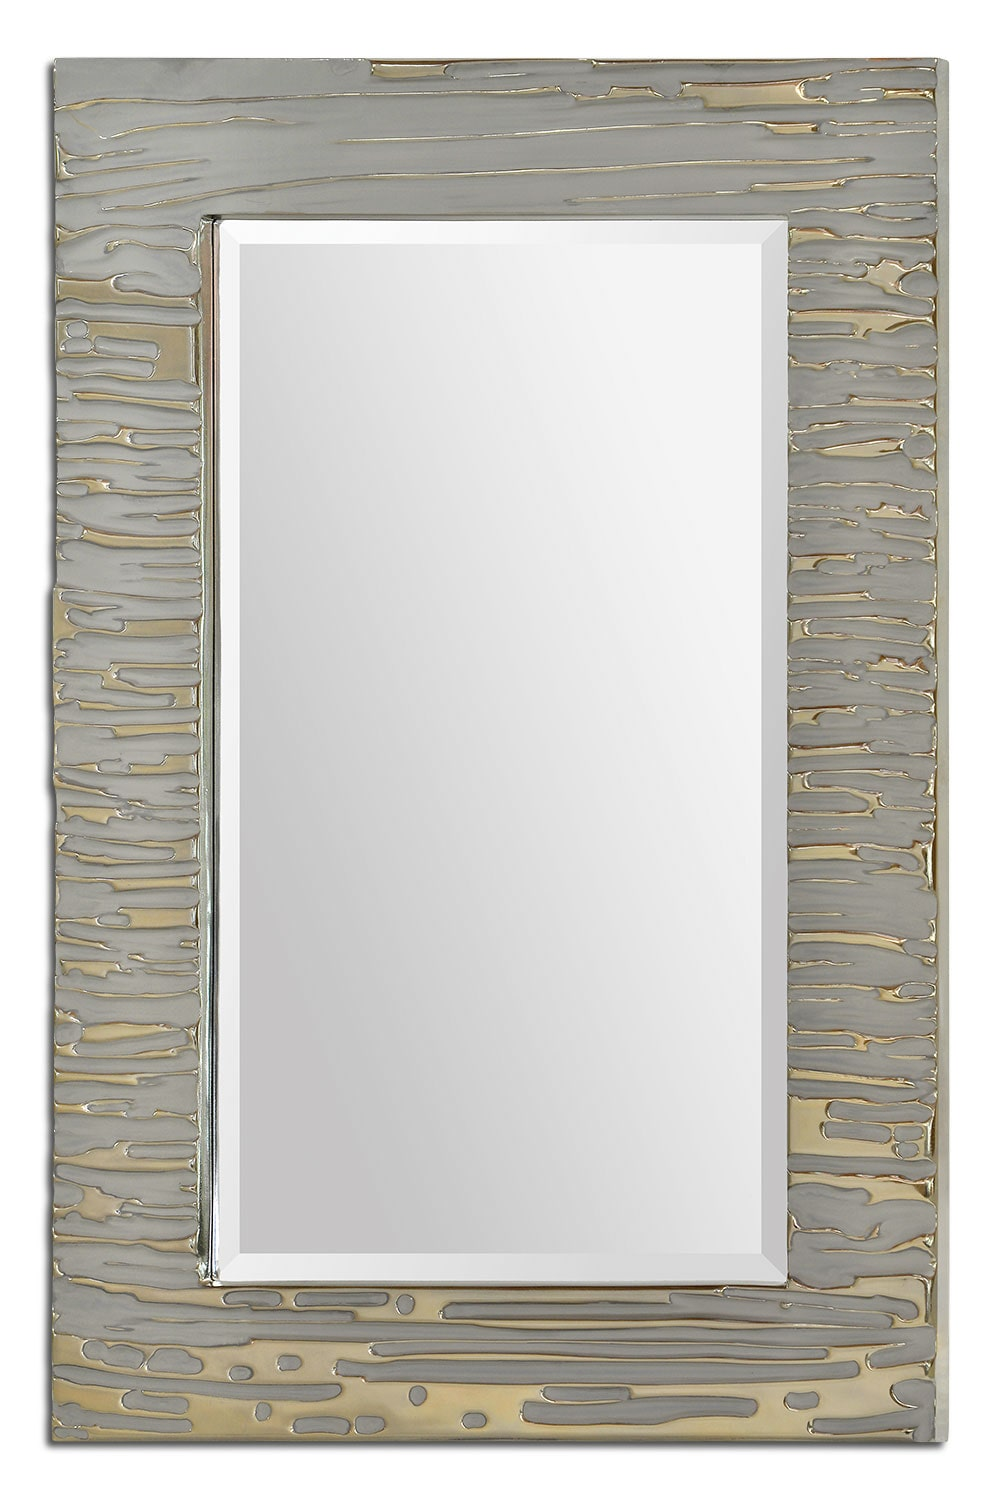 Home Accessories - Foxtrot Mirror